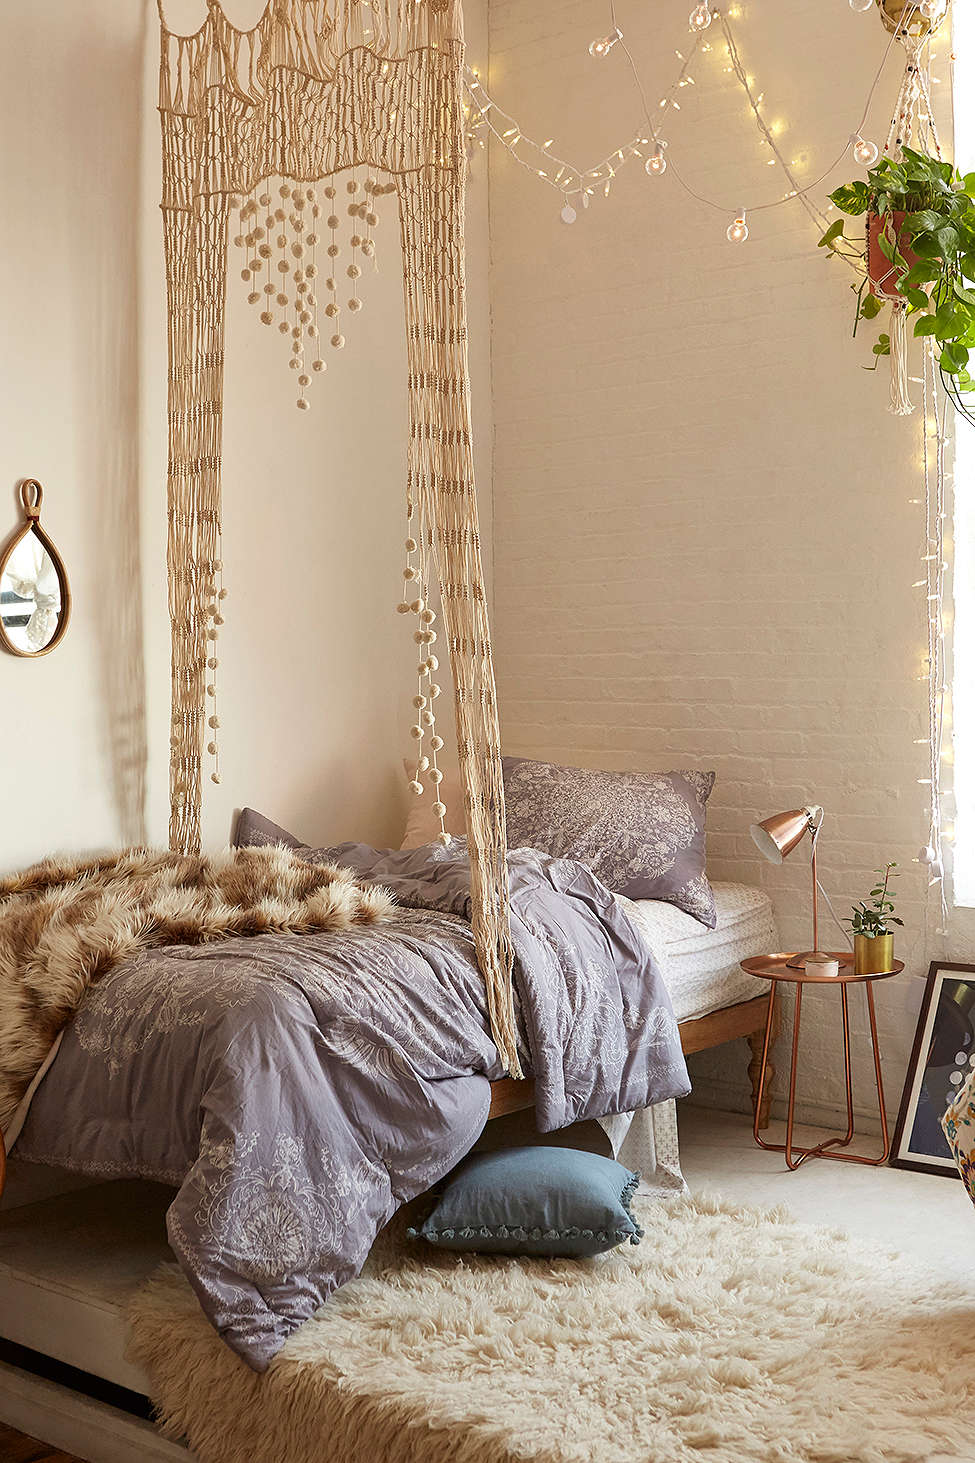 5 dreamy college campus bedrooms daily dream decor for Home decor like urban outfitters